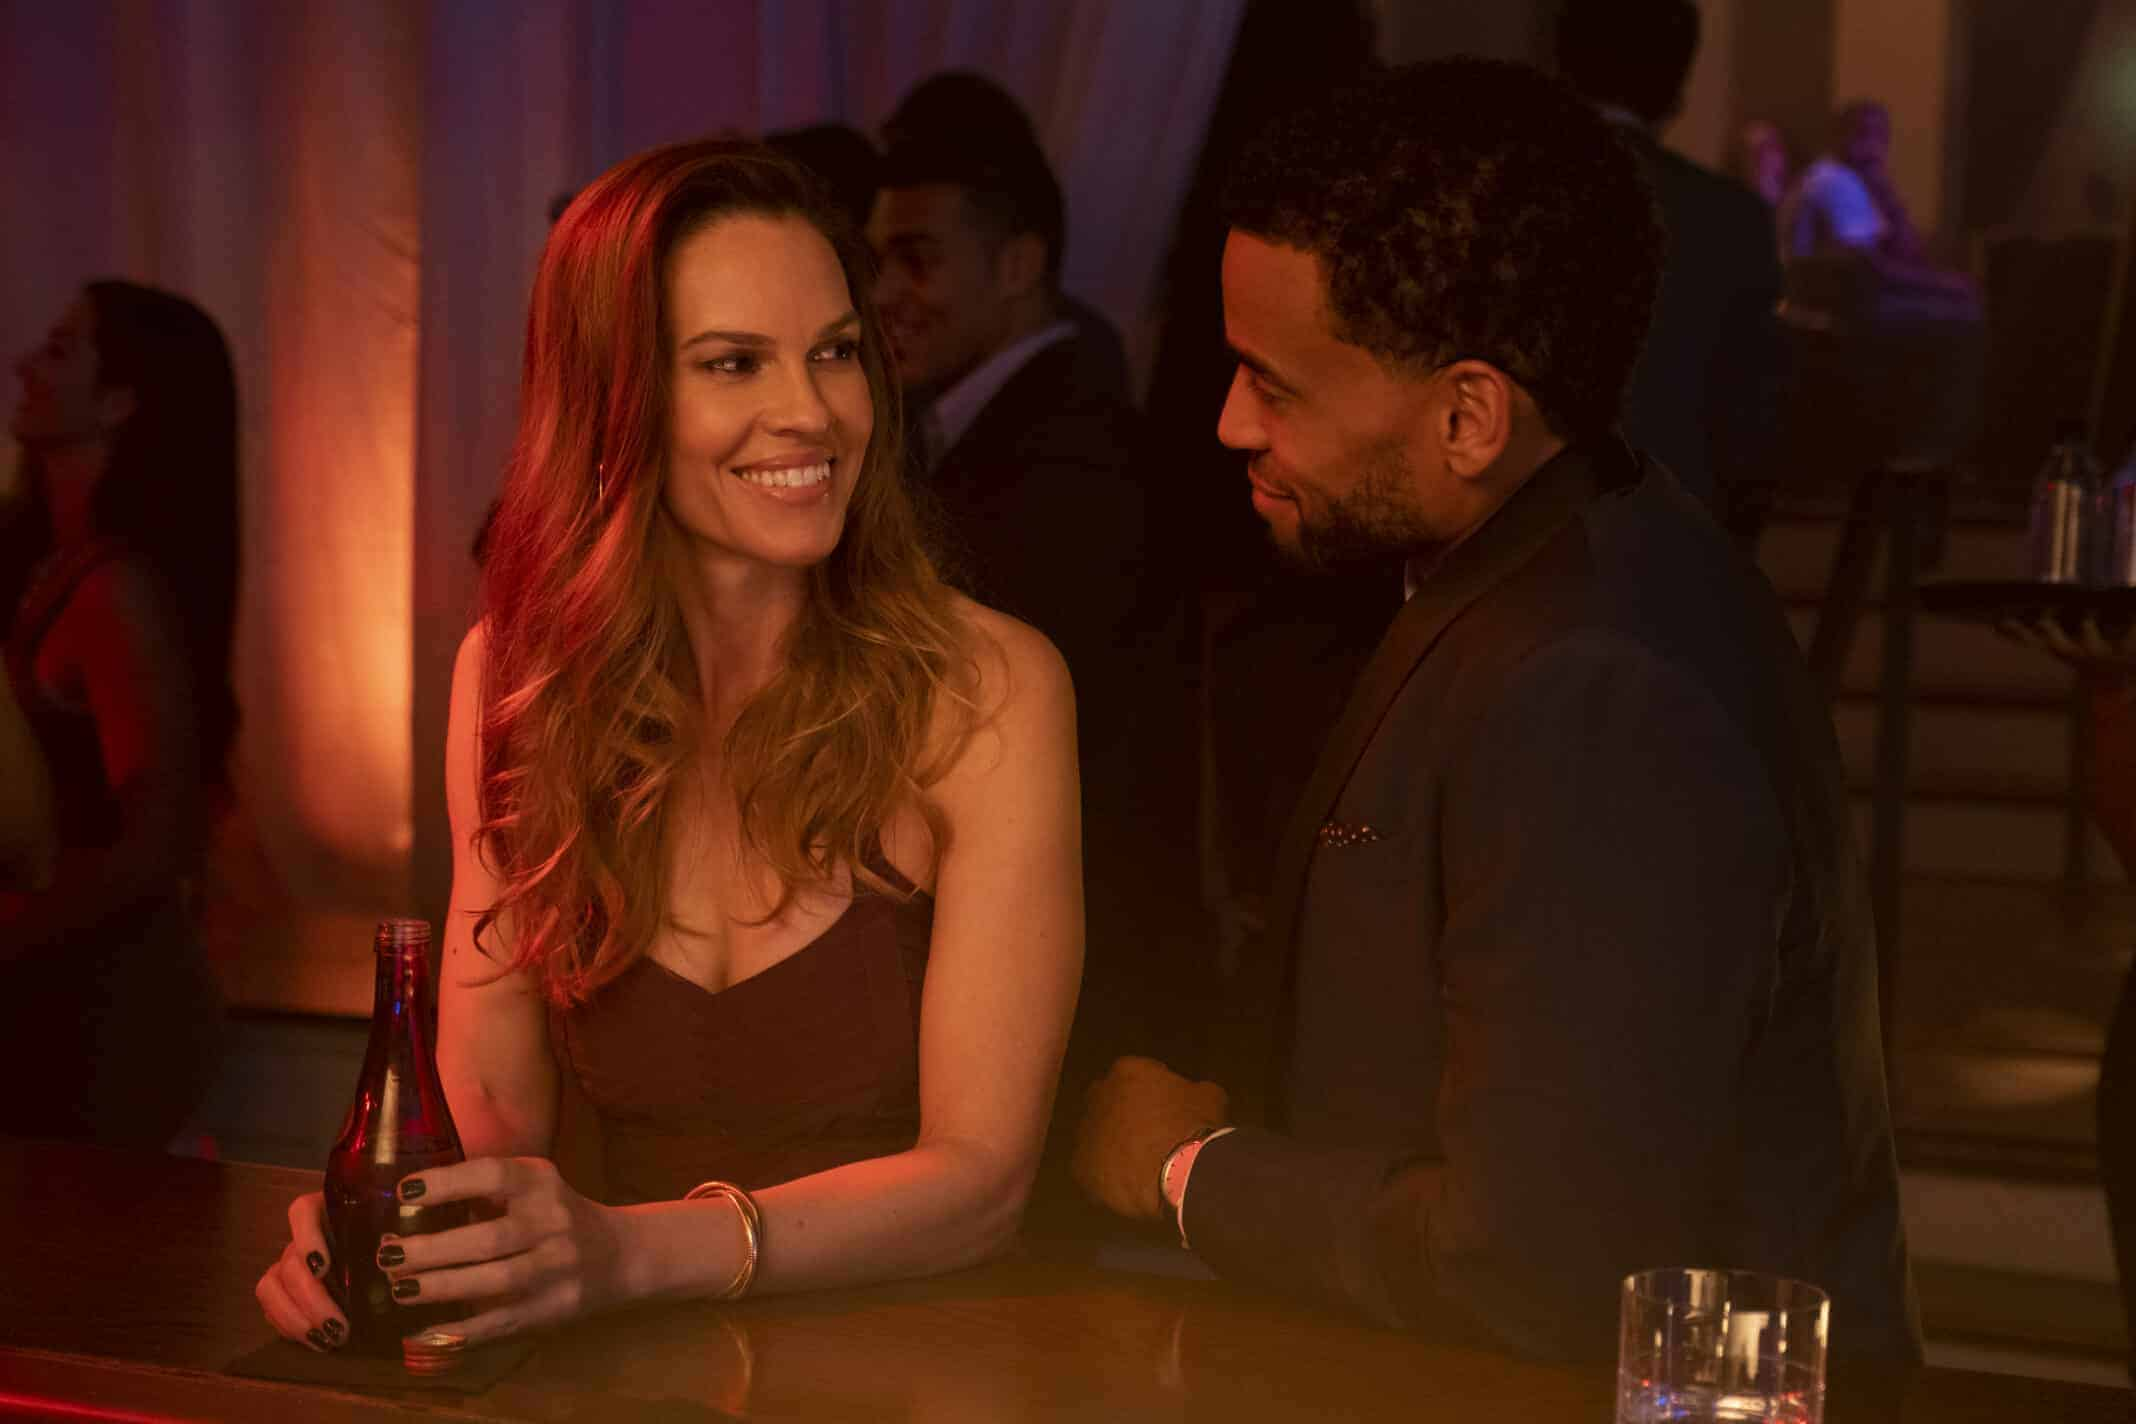 Detective Valerie Quinlan (Hilary Swank) and Derrick Tyler (Michael Ealy) at a bar together